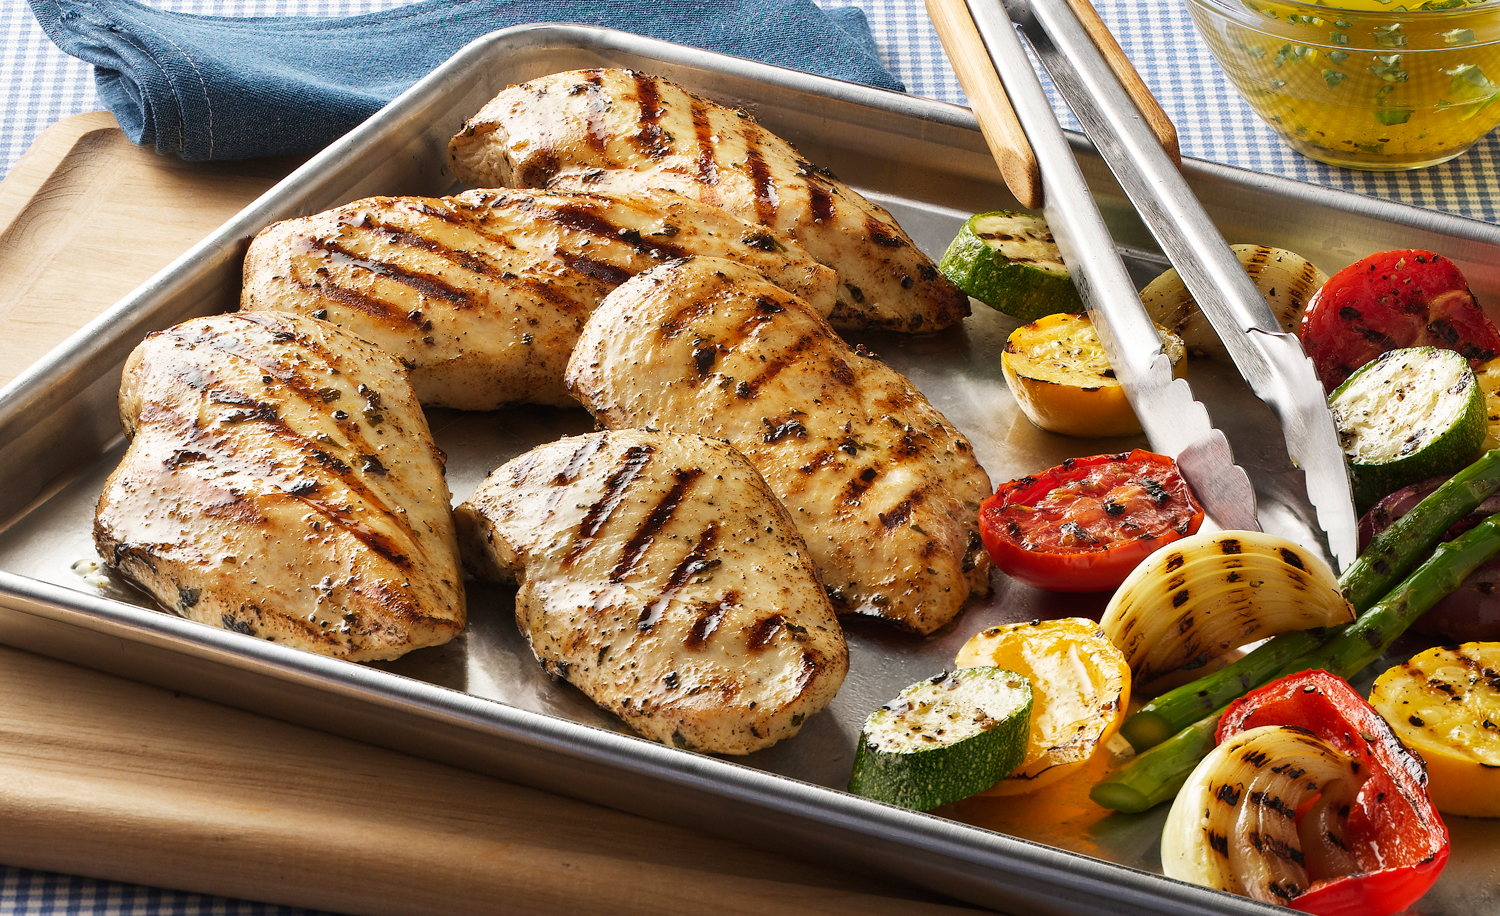 Grilled Chicken And Vegetables On Baking Pan | Tony Kubat Photog